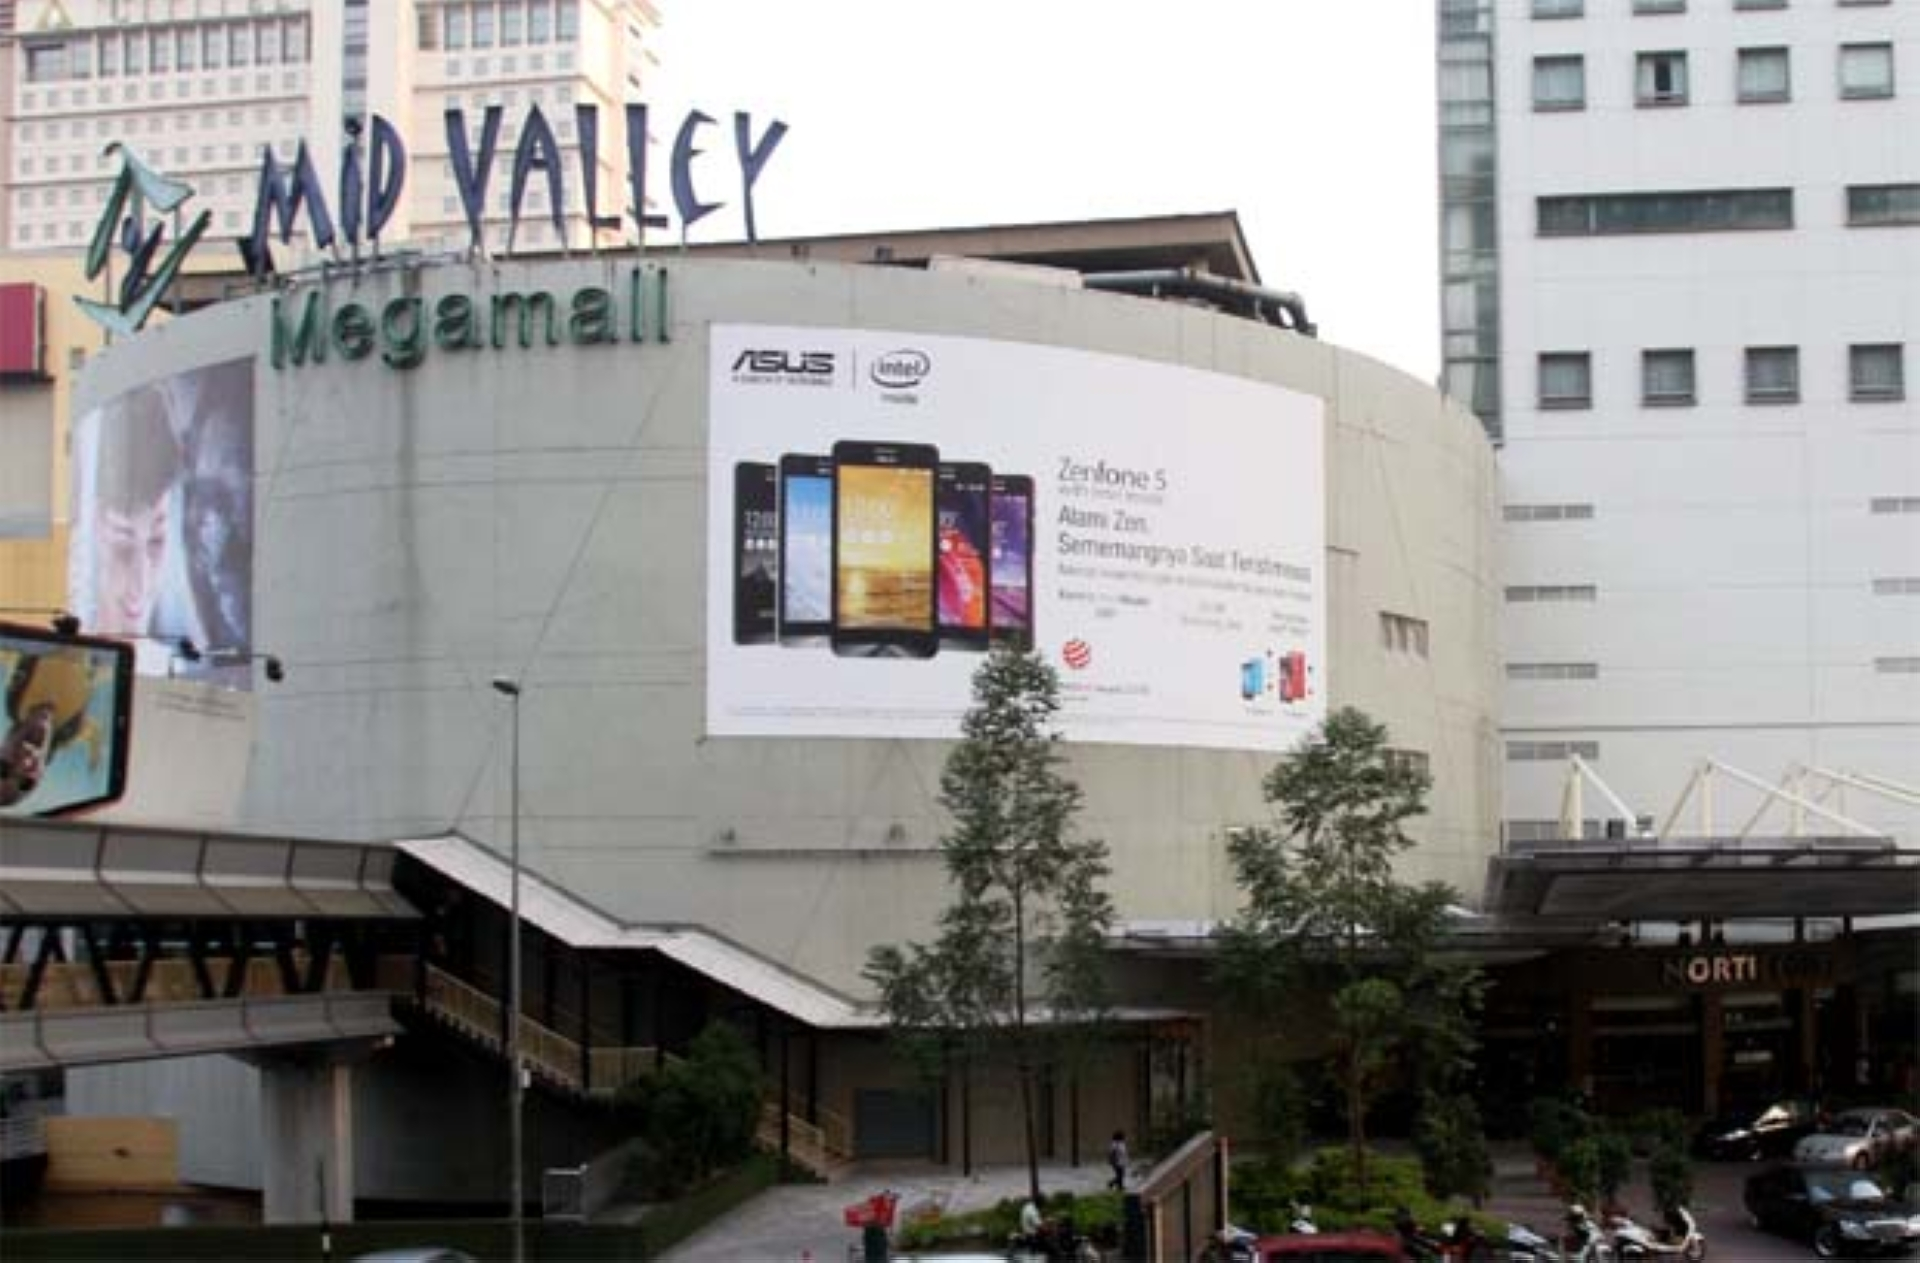 IGB Real Estate Investment Trust owns Mid Valley Megamalll and the neighbouring Gardens Mall in Kuala Lumpur.